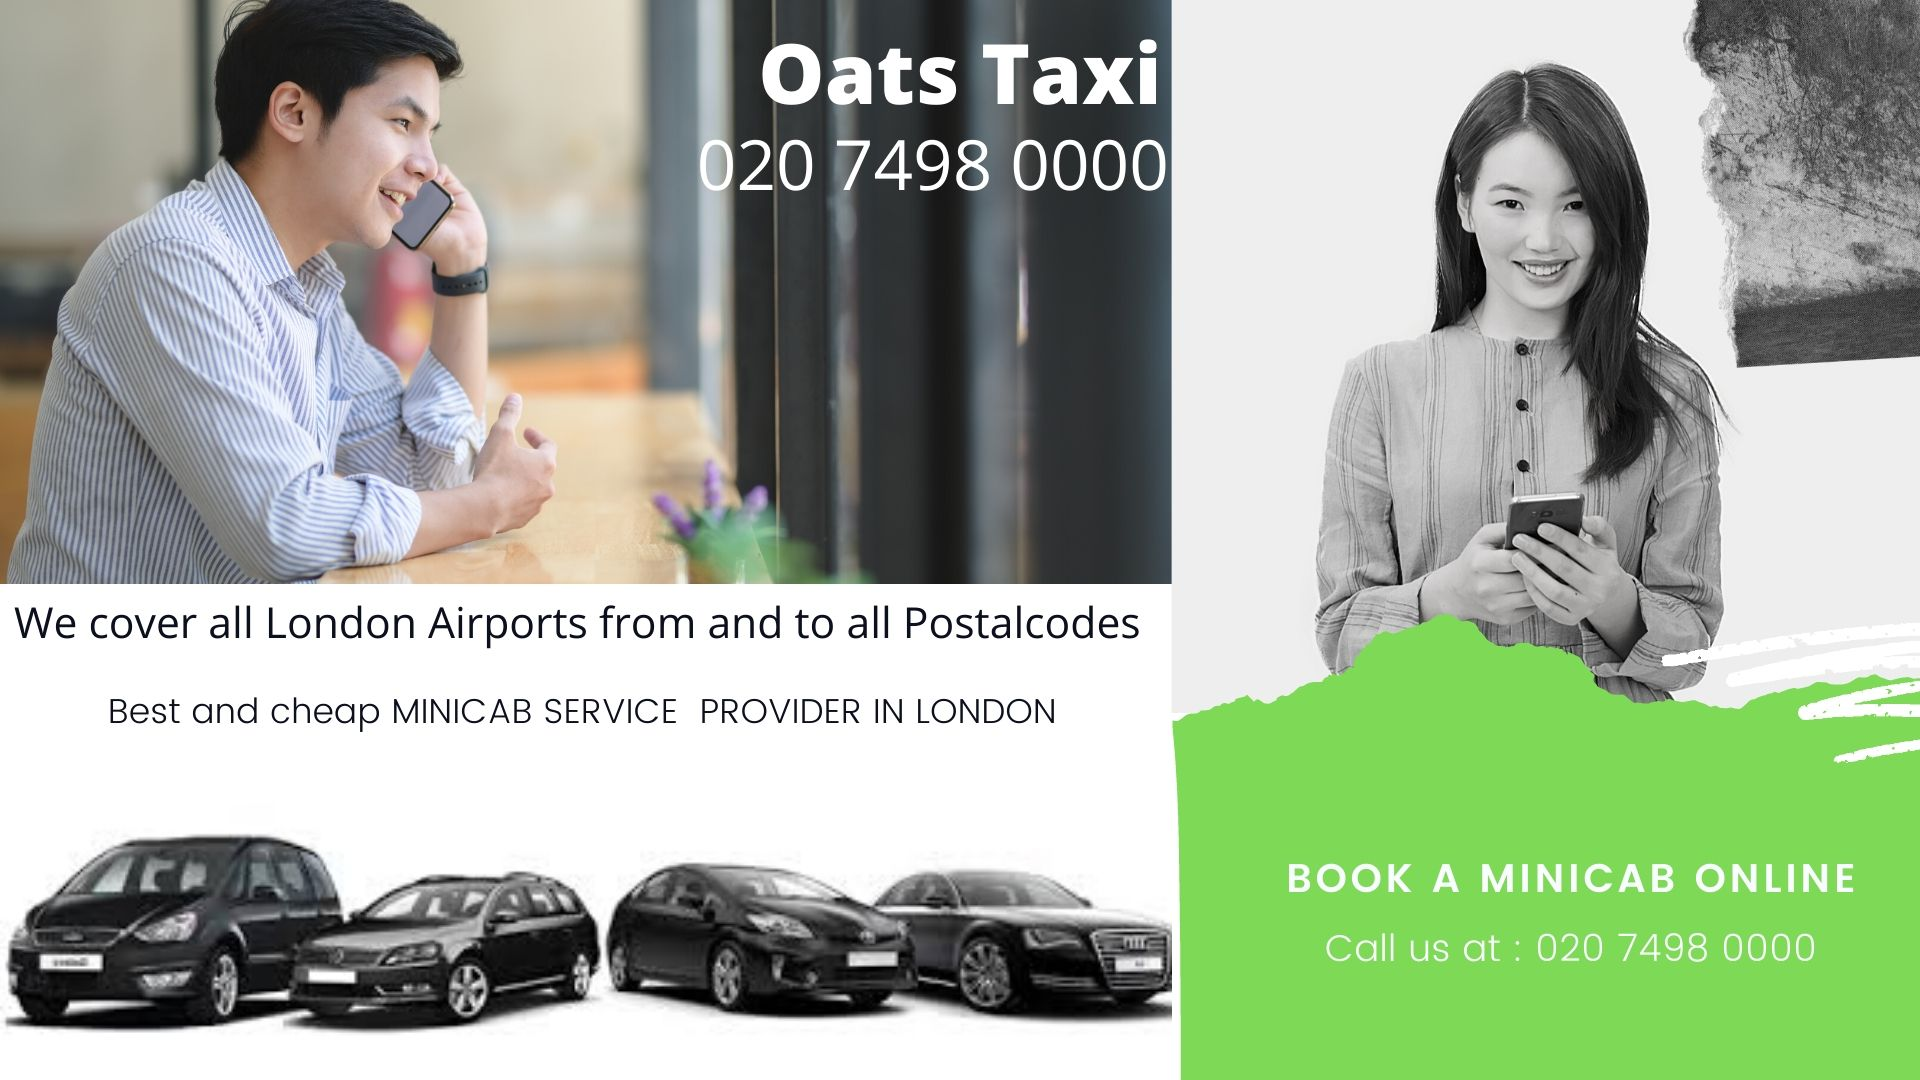 Nearest Taxi Office in Chinatown | Nearest Taxi Office in Gatwick Airport | Call now : 02074980000